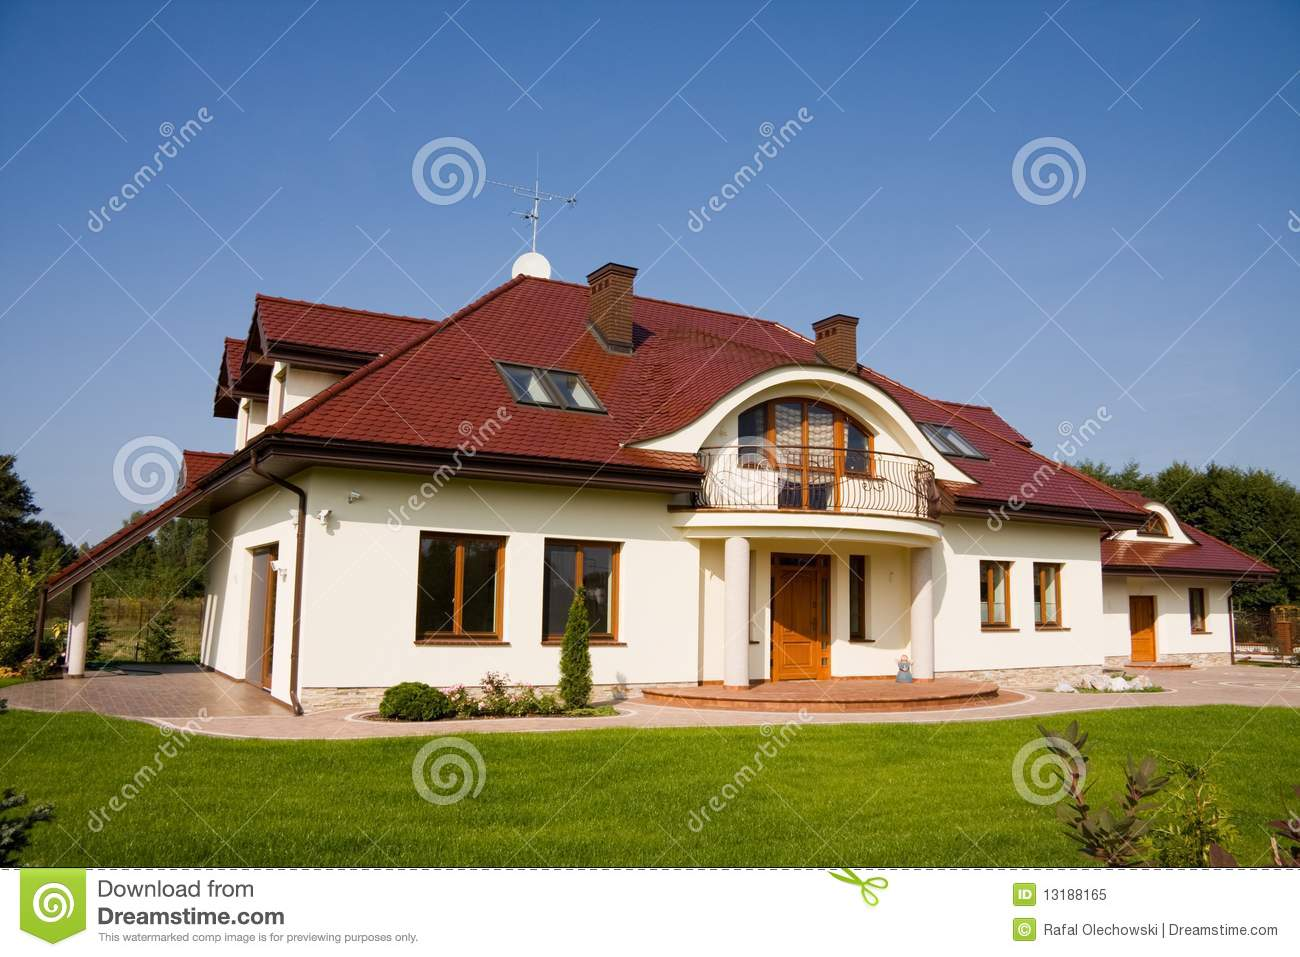 Single family big house stock image image of outdoor for Big house images